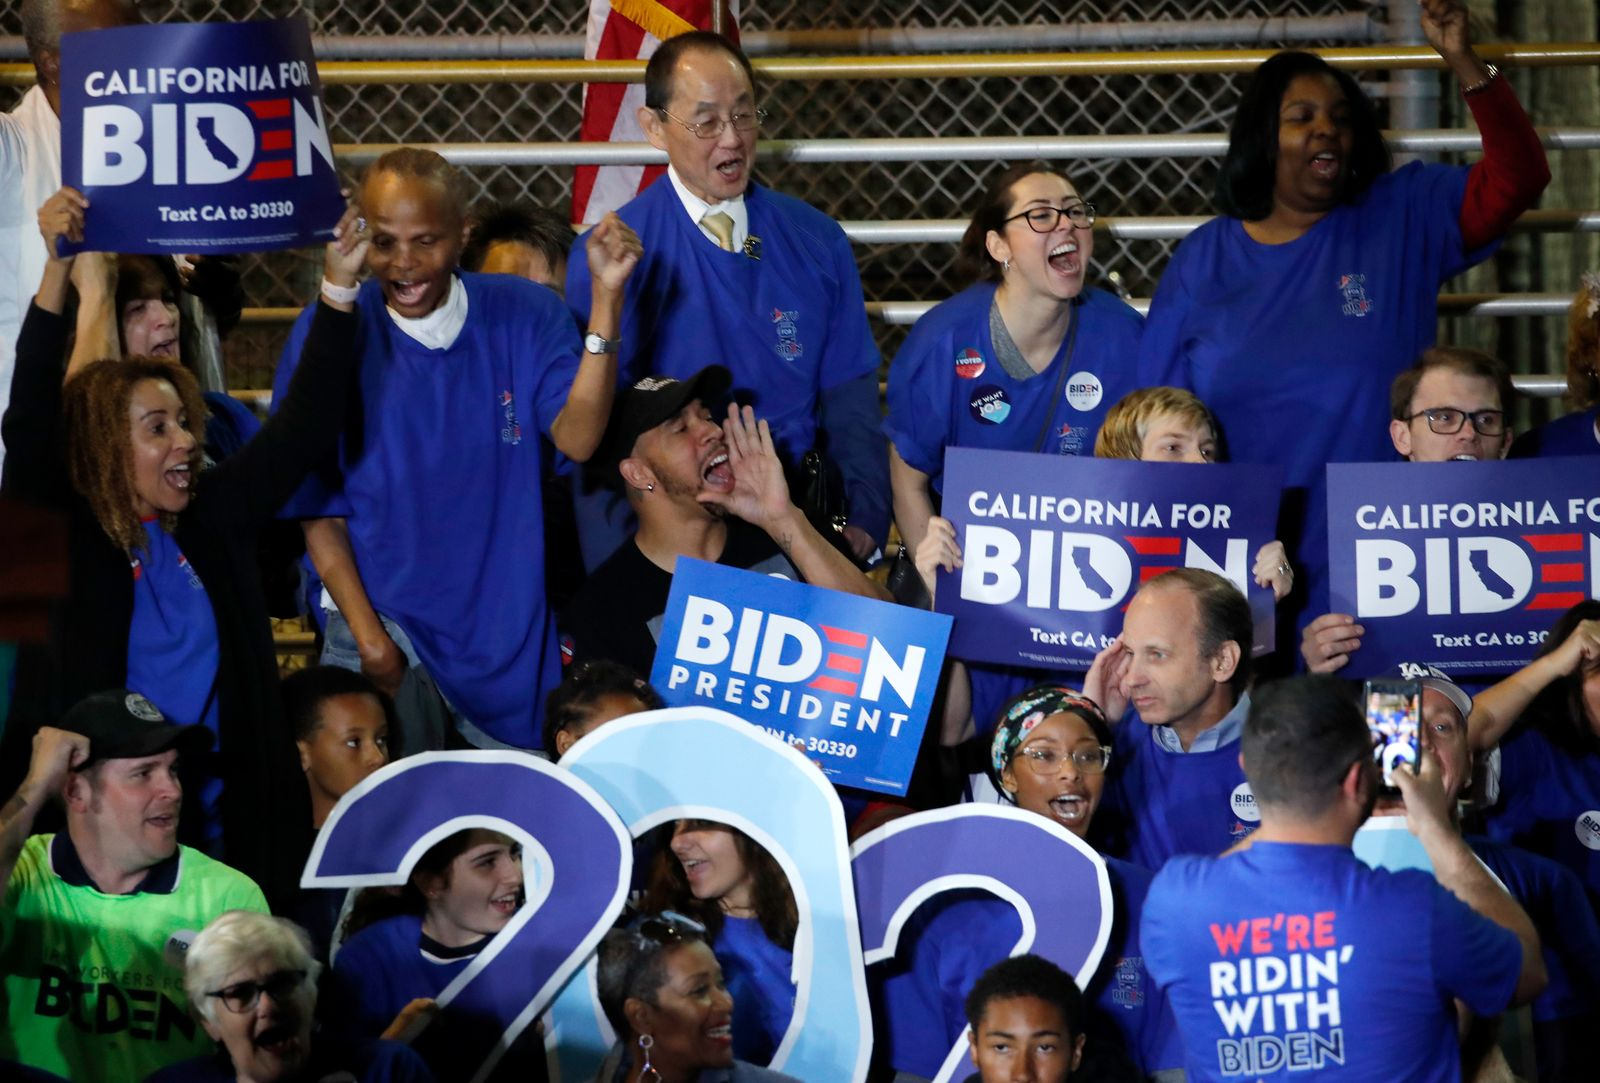 Supporters of Democratic U.S. presidential candidate and former Vice President Joe Biden attend his Super Tuesday night rally in Los Angeles, California